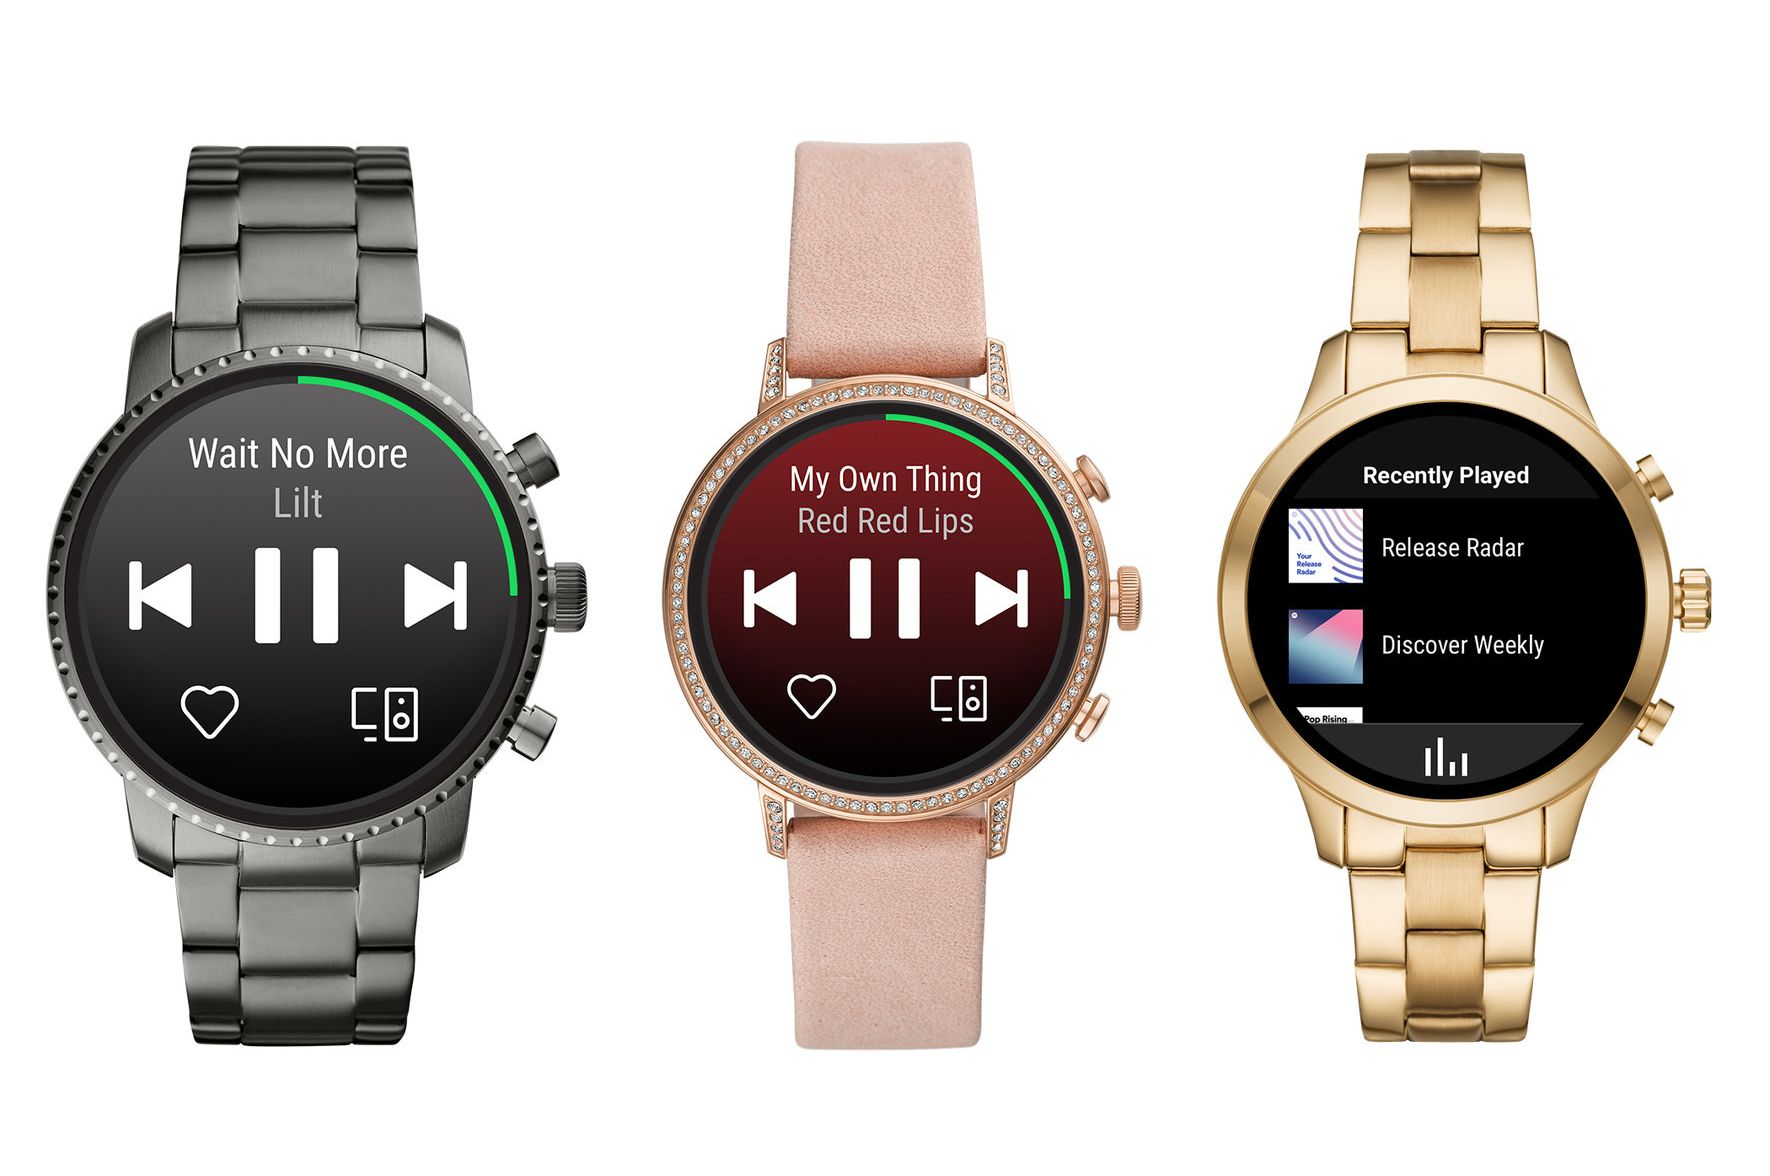 Finally, a Spotify app for your smartwatch | The Star Online